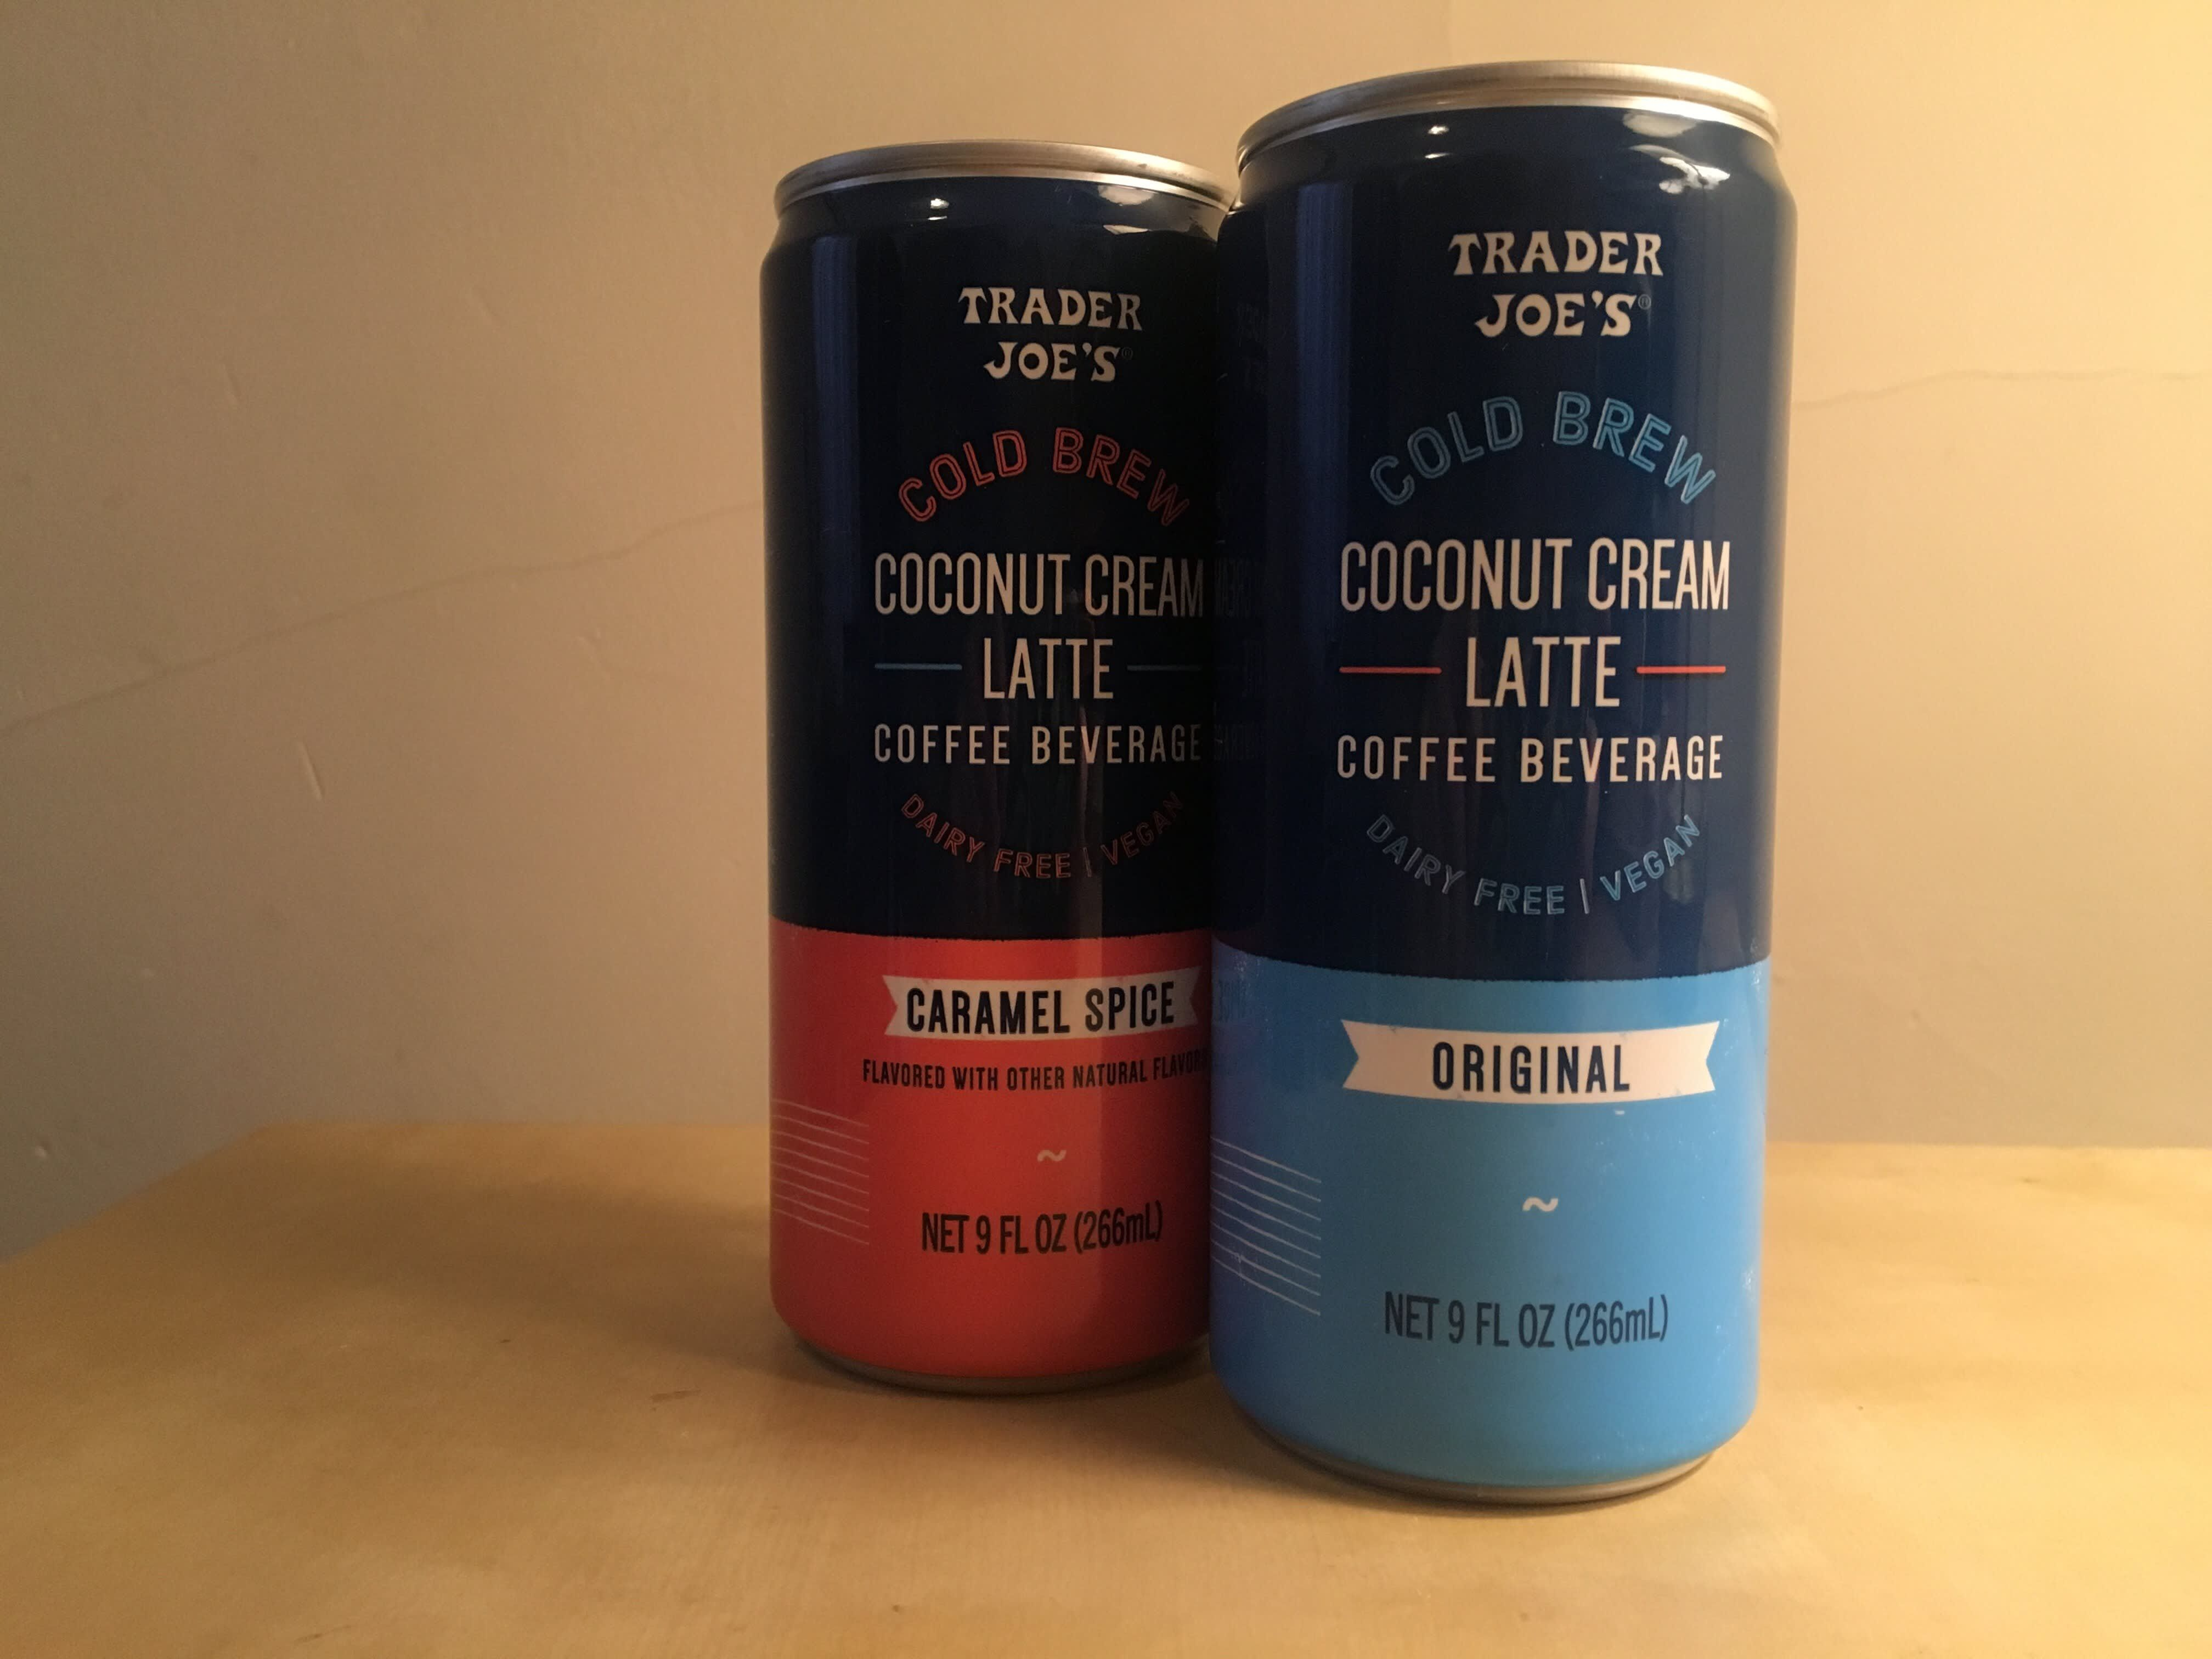 I tried trader joes cold brew coconut cream latte and